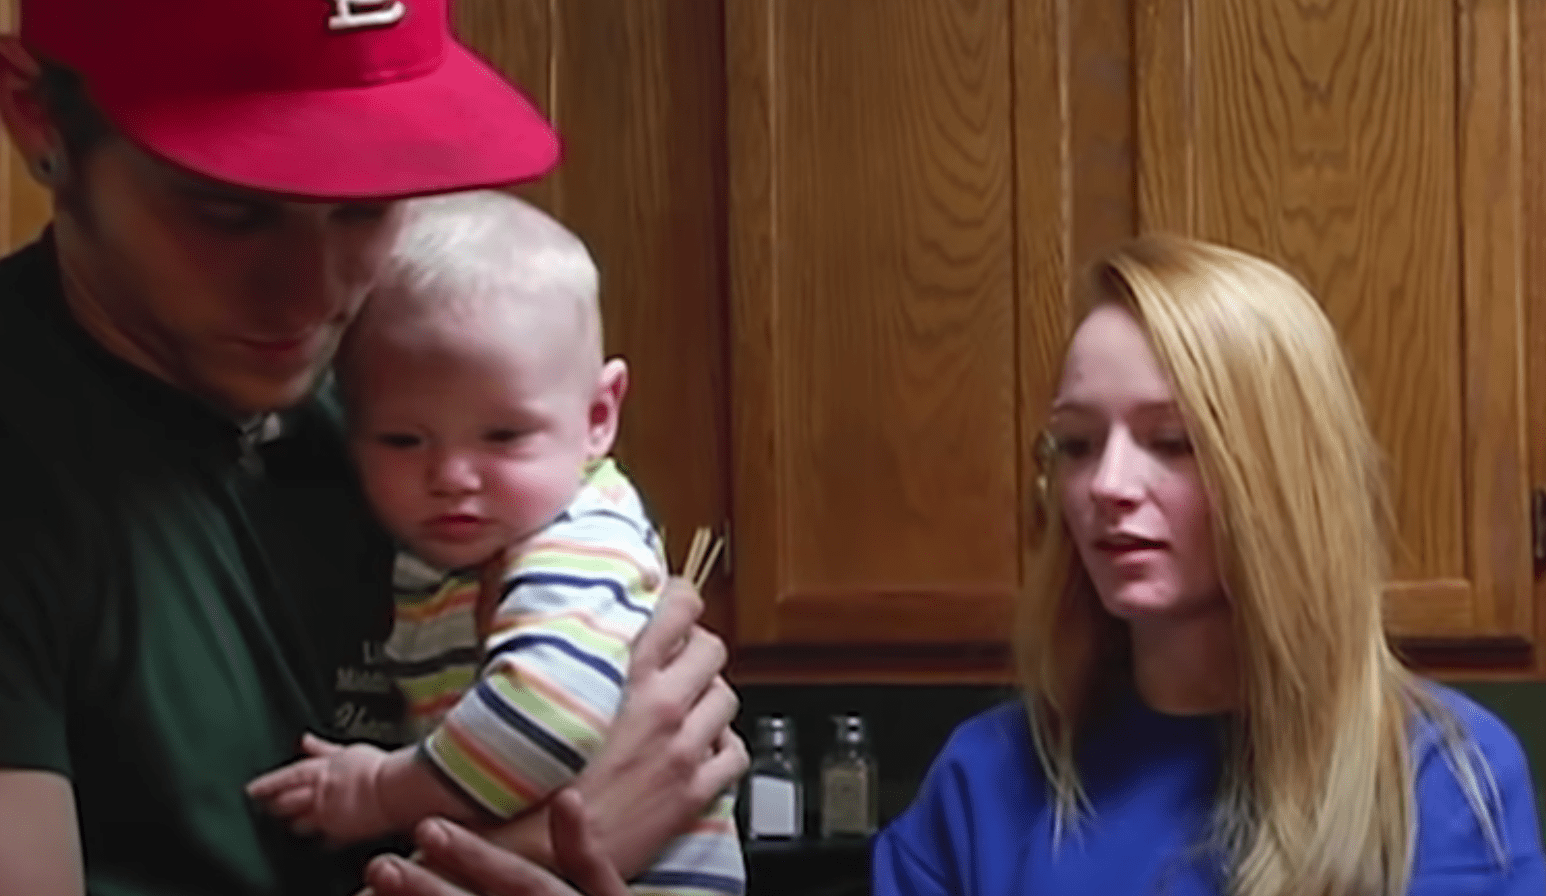 Image Source: Youtube/MTV's Teen Mom| 16 and Pregnant/MTV